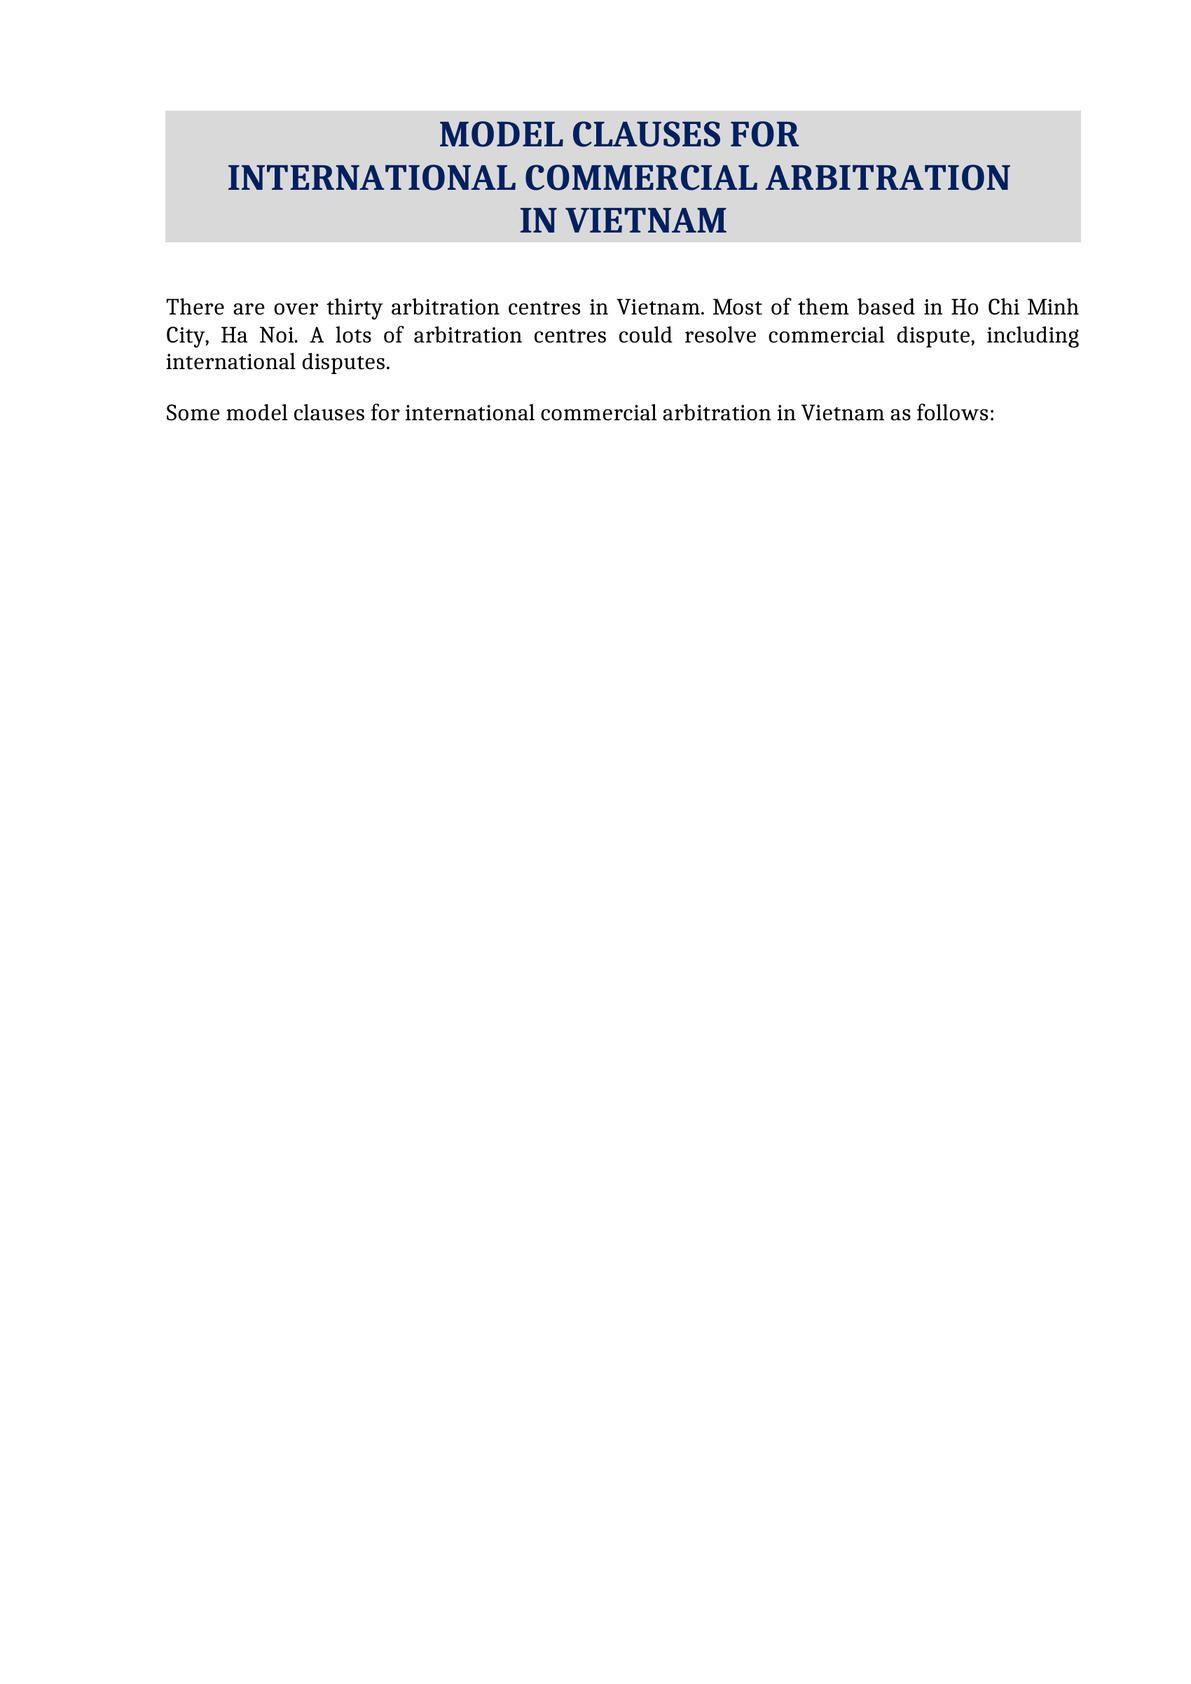 Model clauses for commercial arbitration in Vietnam-0